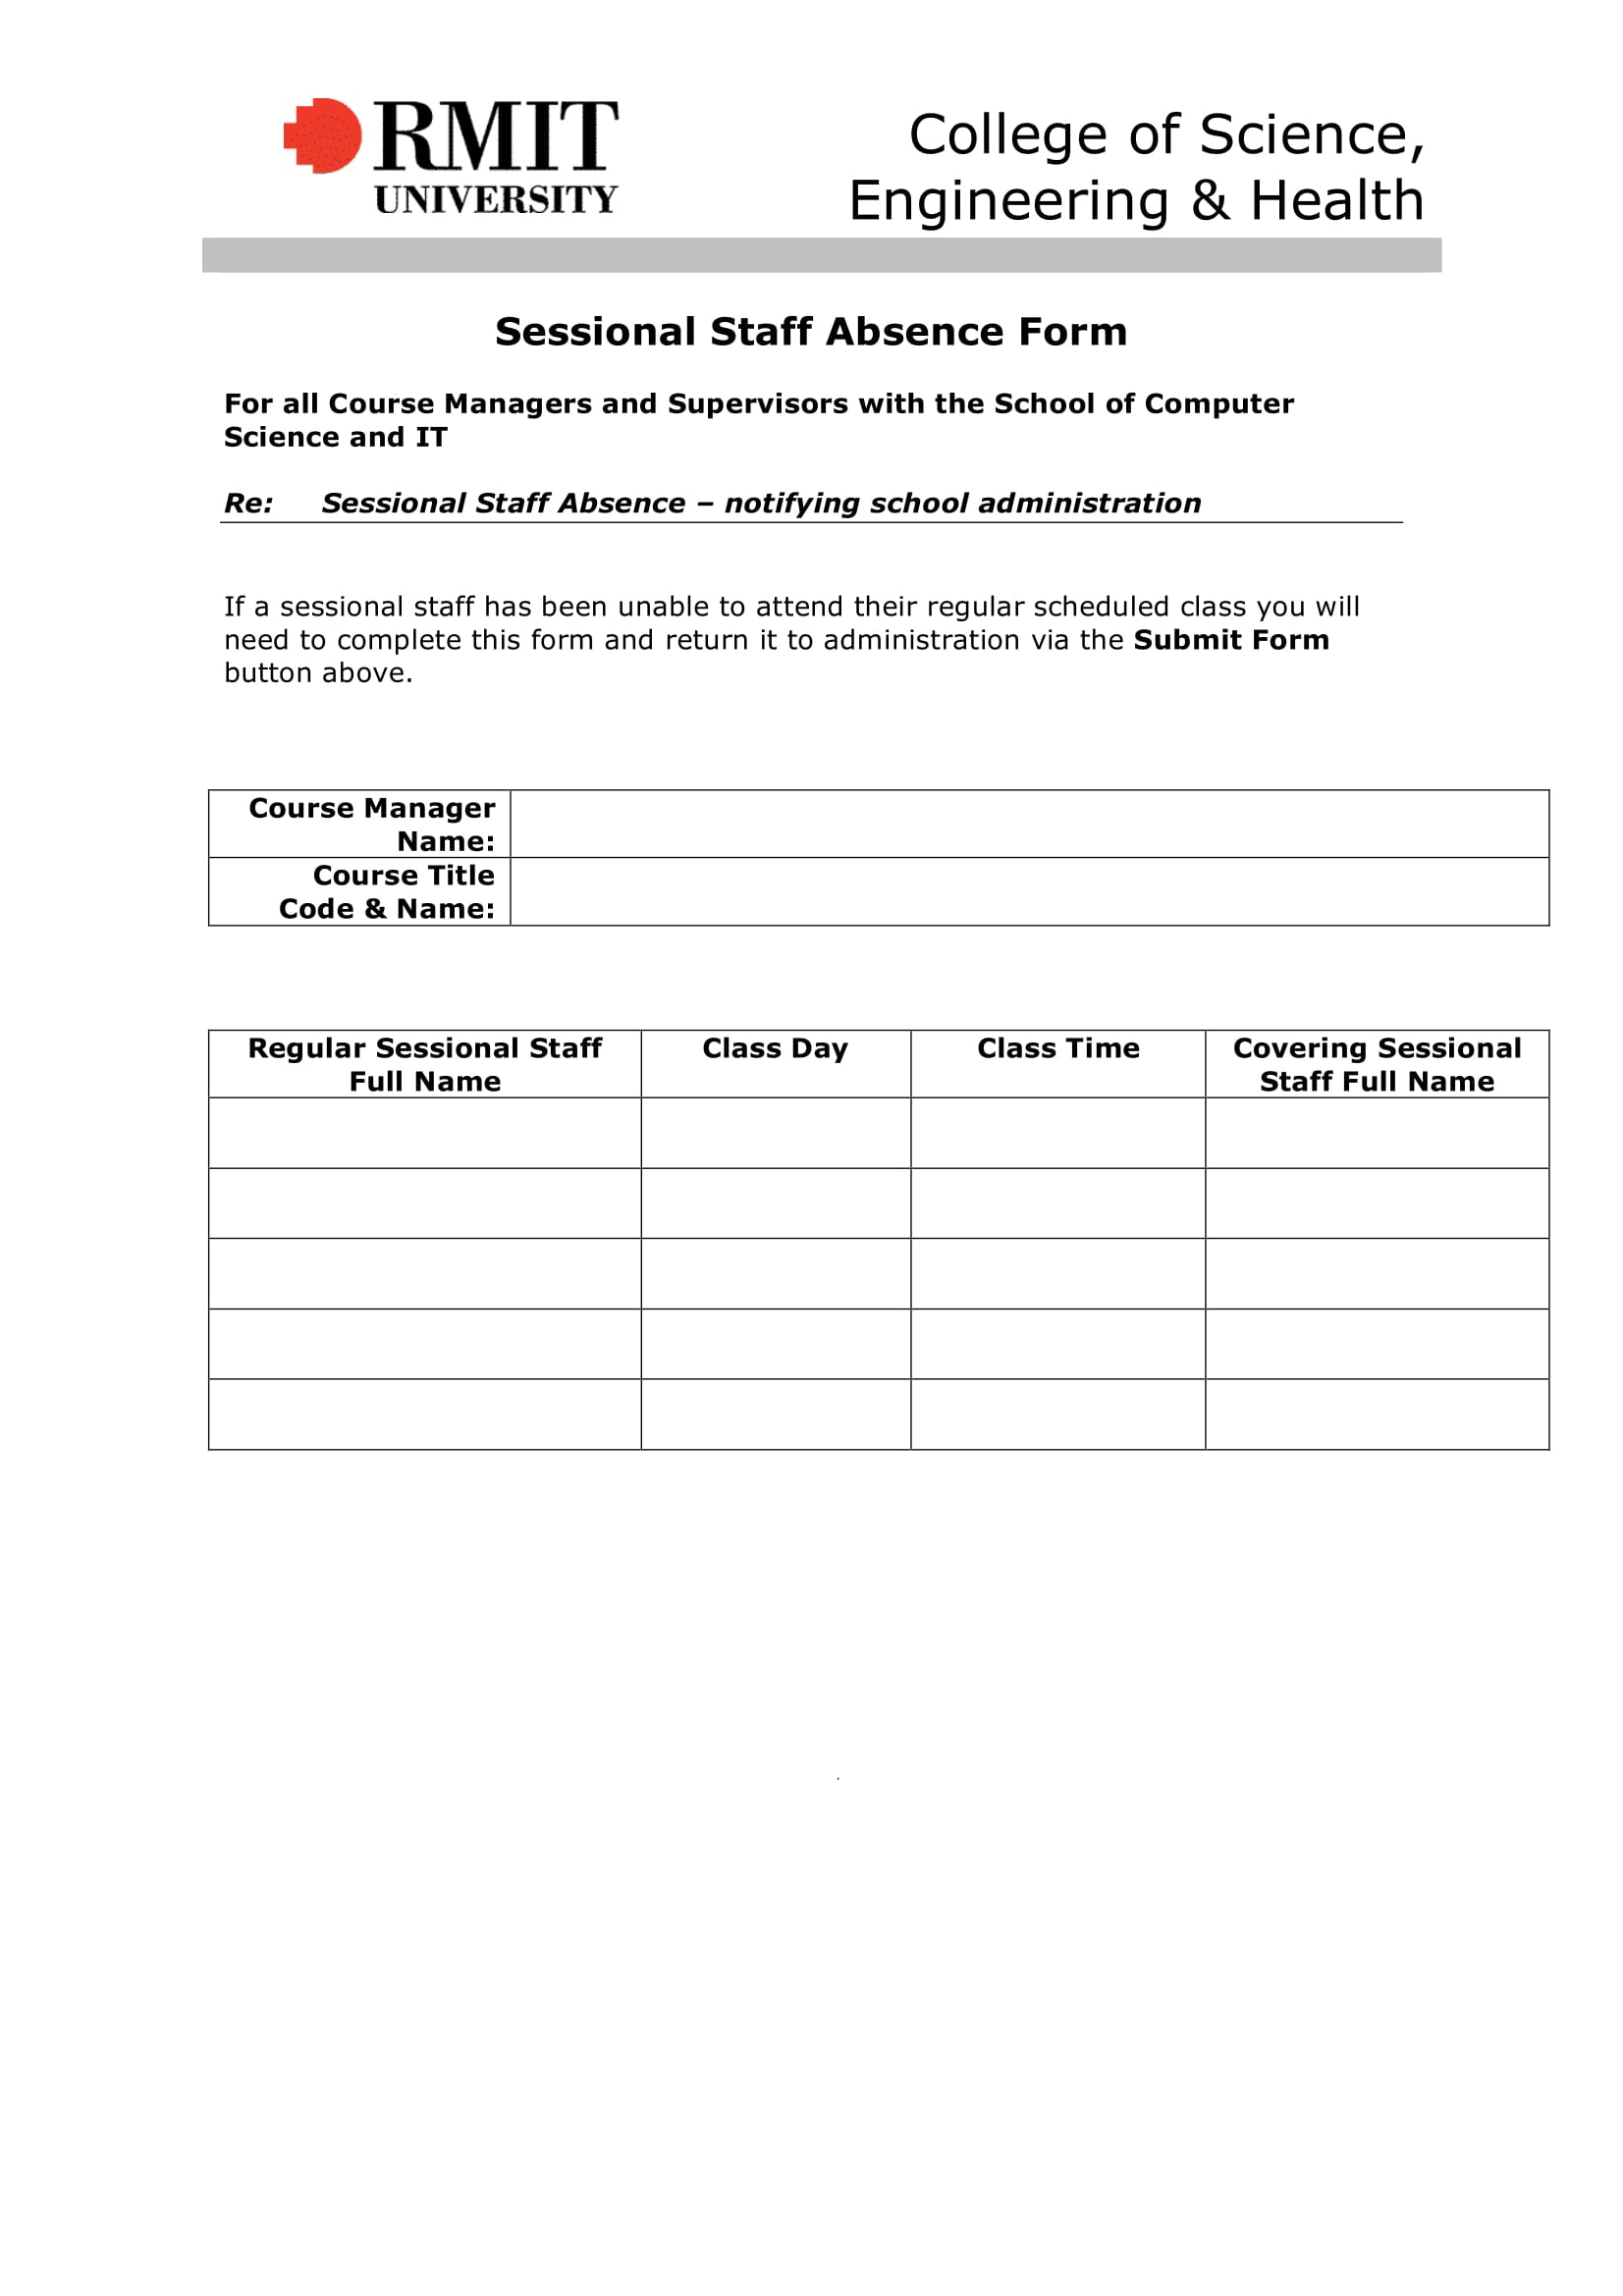 sessional staff absence form 1